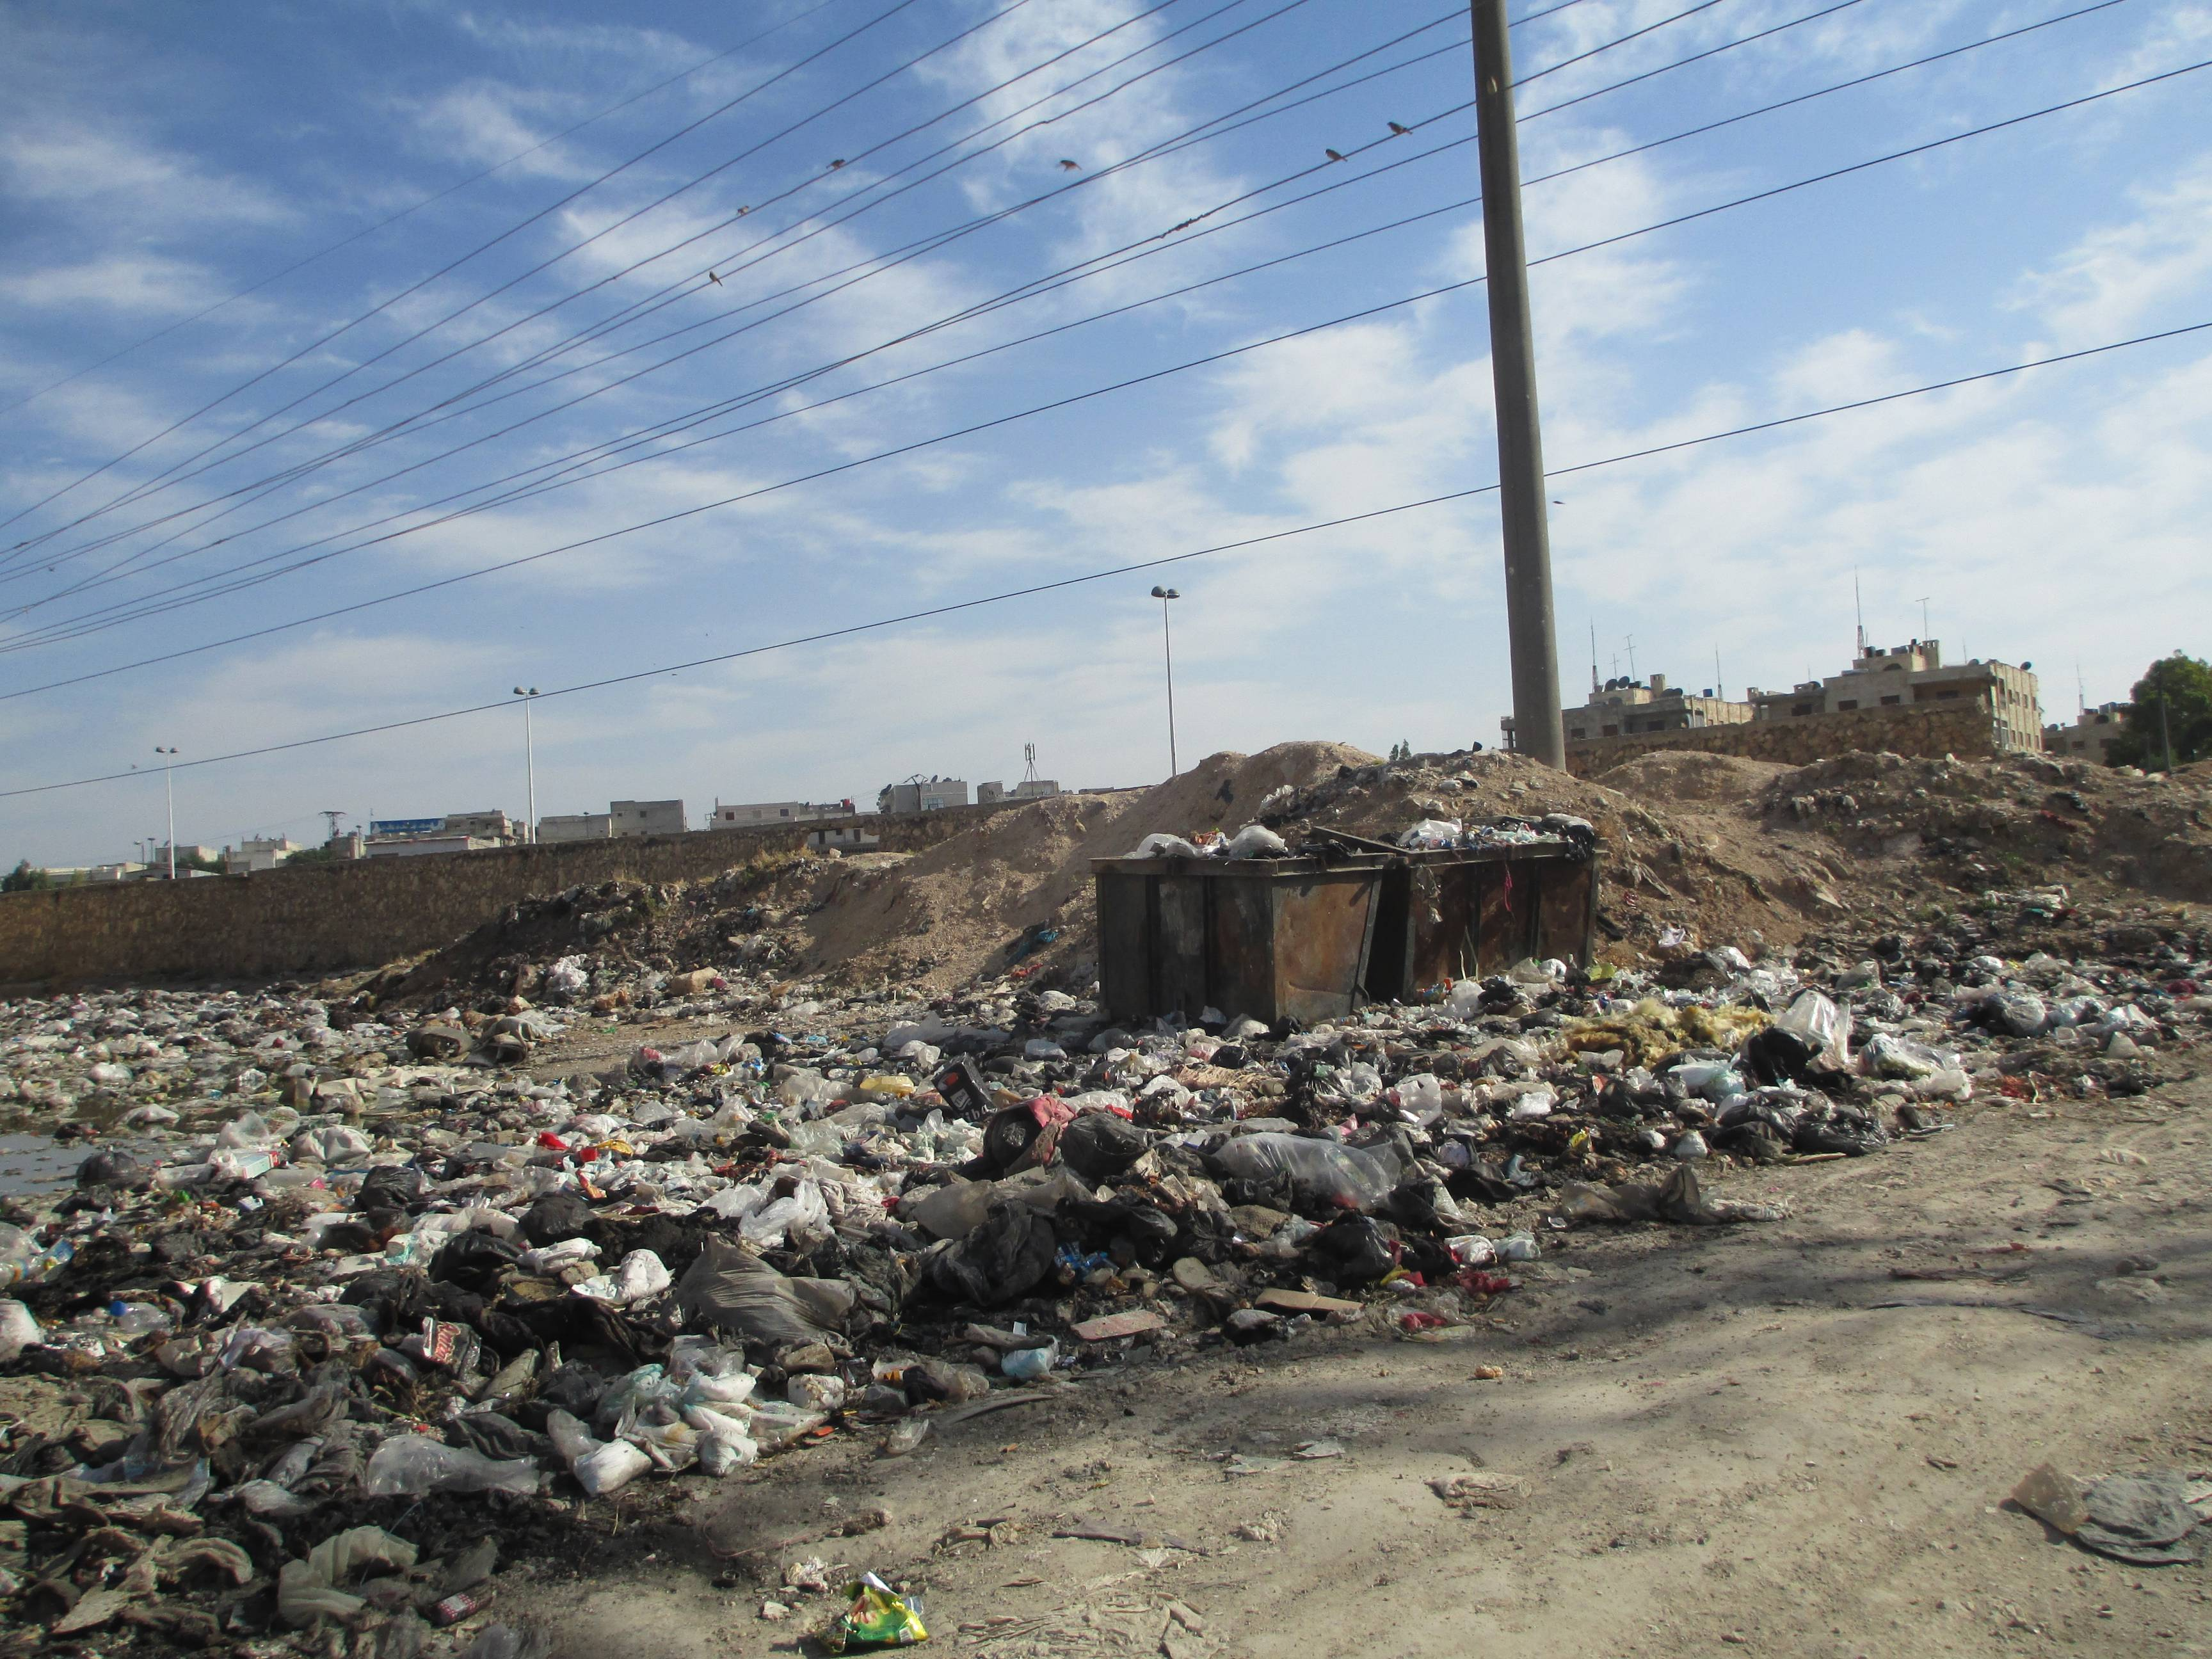 At the gates of a settlement: garbage, bags and refuse piles up in the background